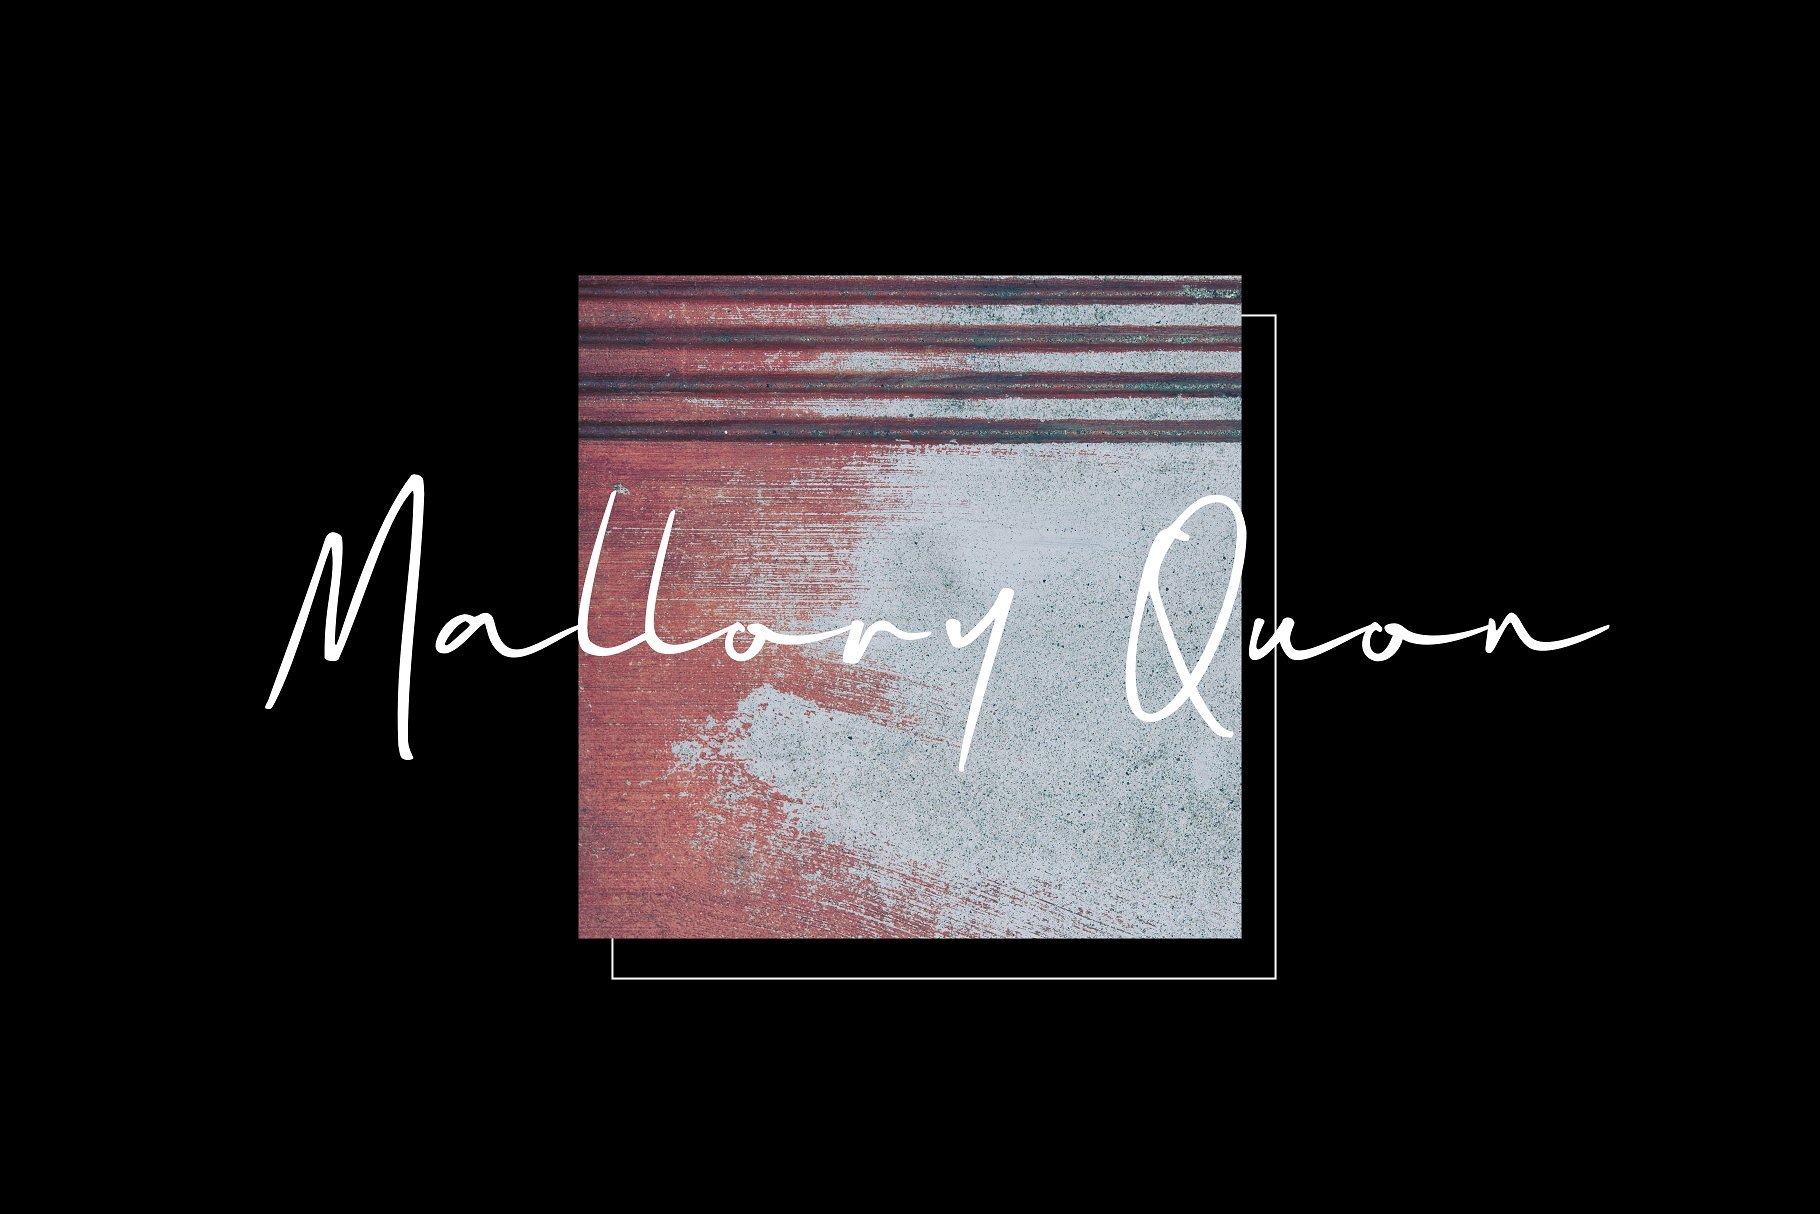 https://fontclarity.com/wp-content/uploads/2019/09/mallory-quon-signature-font-download-0.jpg Free Download